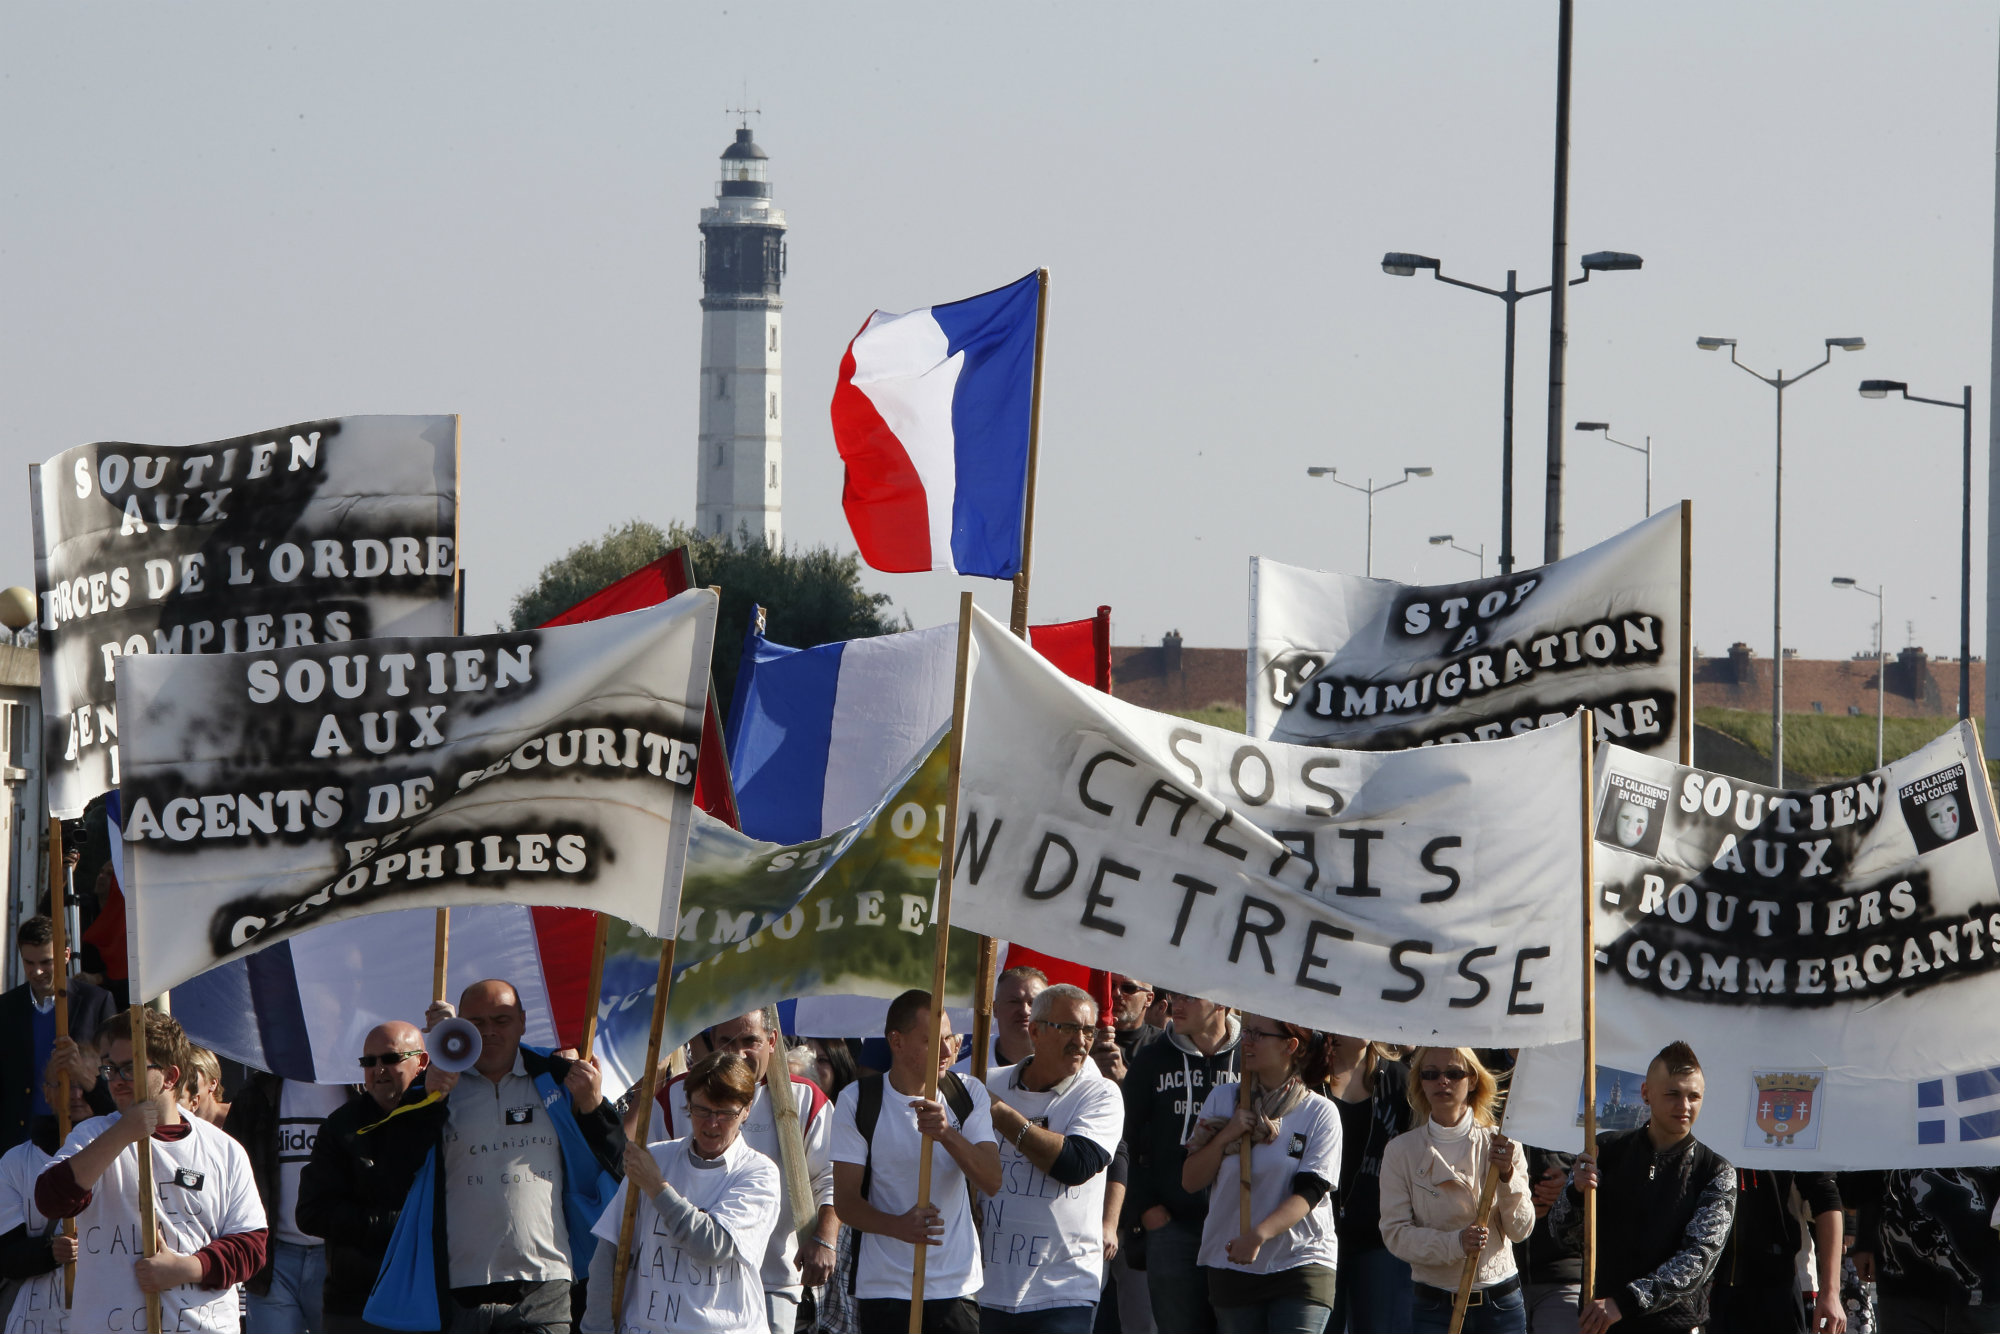 everal hundred people hold banners and wave French flags as they demonstrate against illegal immigration in Calais, France, October 4, 2015. More than 3,000 migrants and refugees fleeing war and poverty in Africa and the Middle East are camped on the French side of the tunnel in Calais, trying to board vehicles heading for Britain via the tunnel and on ferries or by walking through the tunnel, even though security measures aimed at keeping them out have been stepped up. REUTERS/Pascal Rossignol